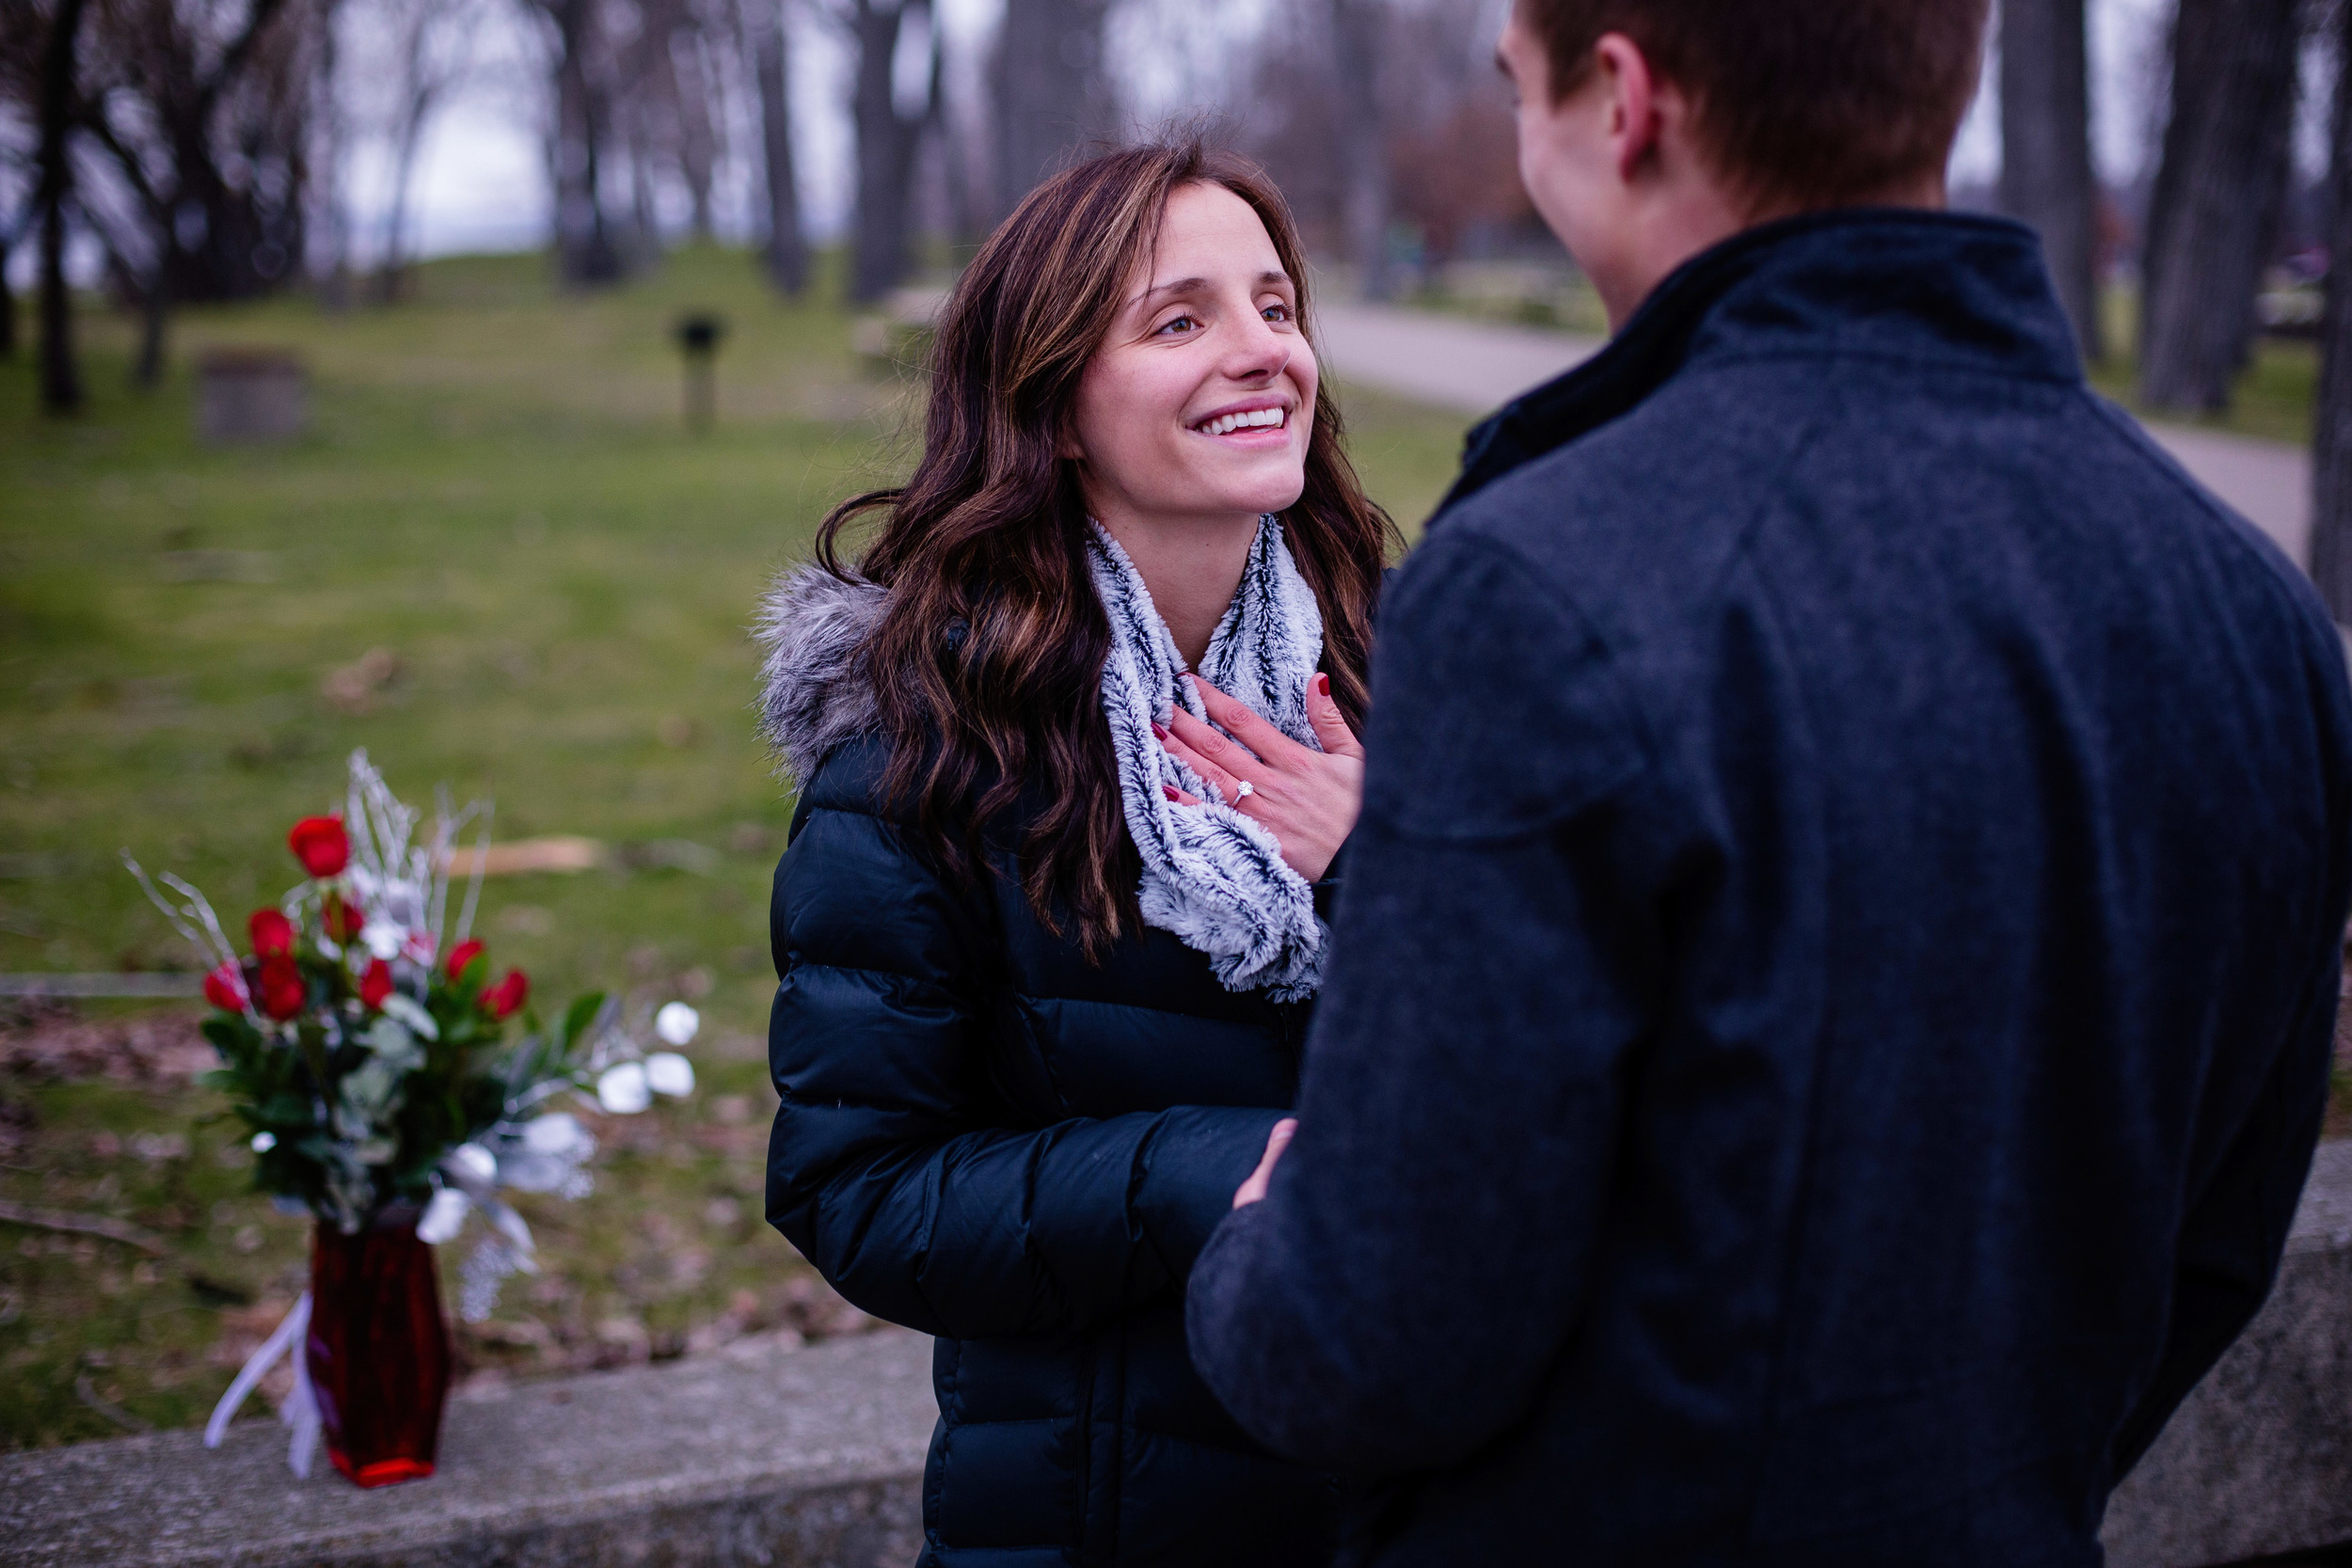 Kevin-Meredith-Proposal-Stefan-Ludwig-Photography-Buffalo-NY-Erie-PA-9-x.jpg